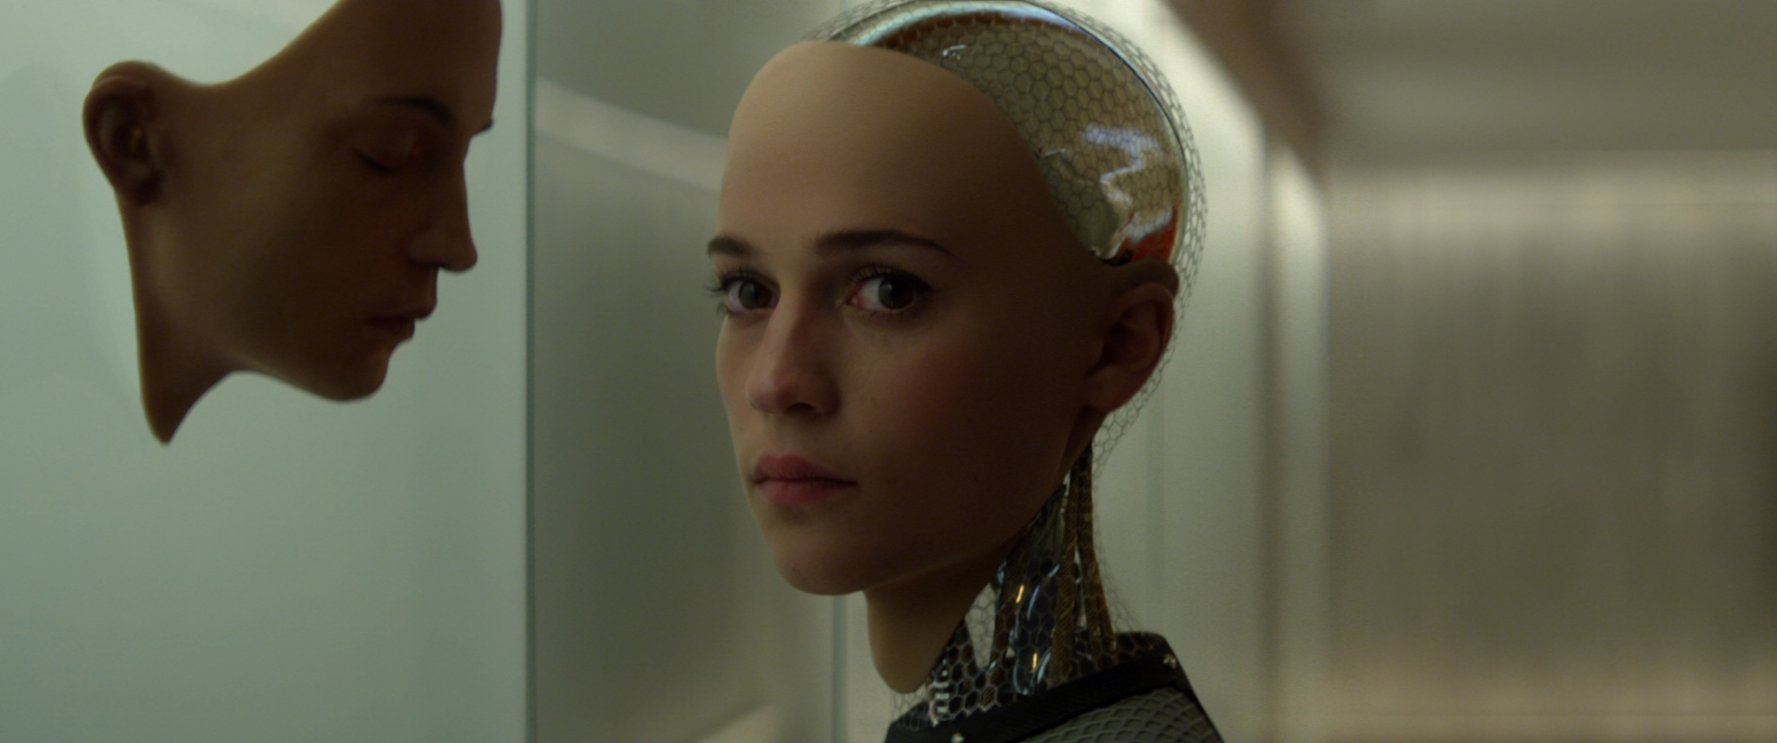 10_Ex Machina_imdb.jpg